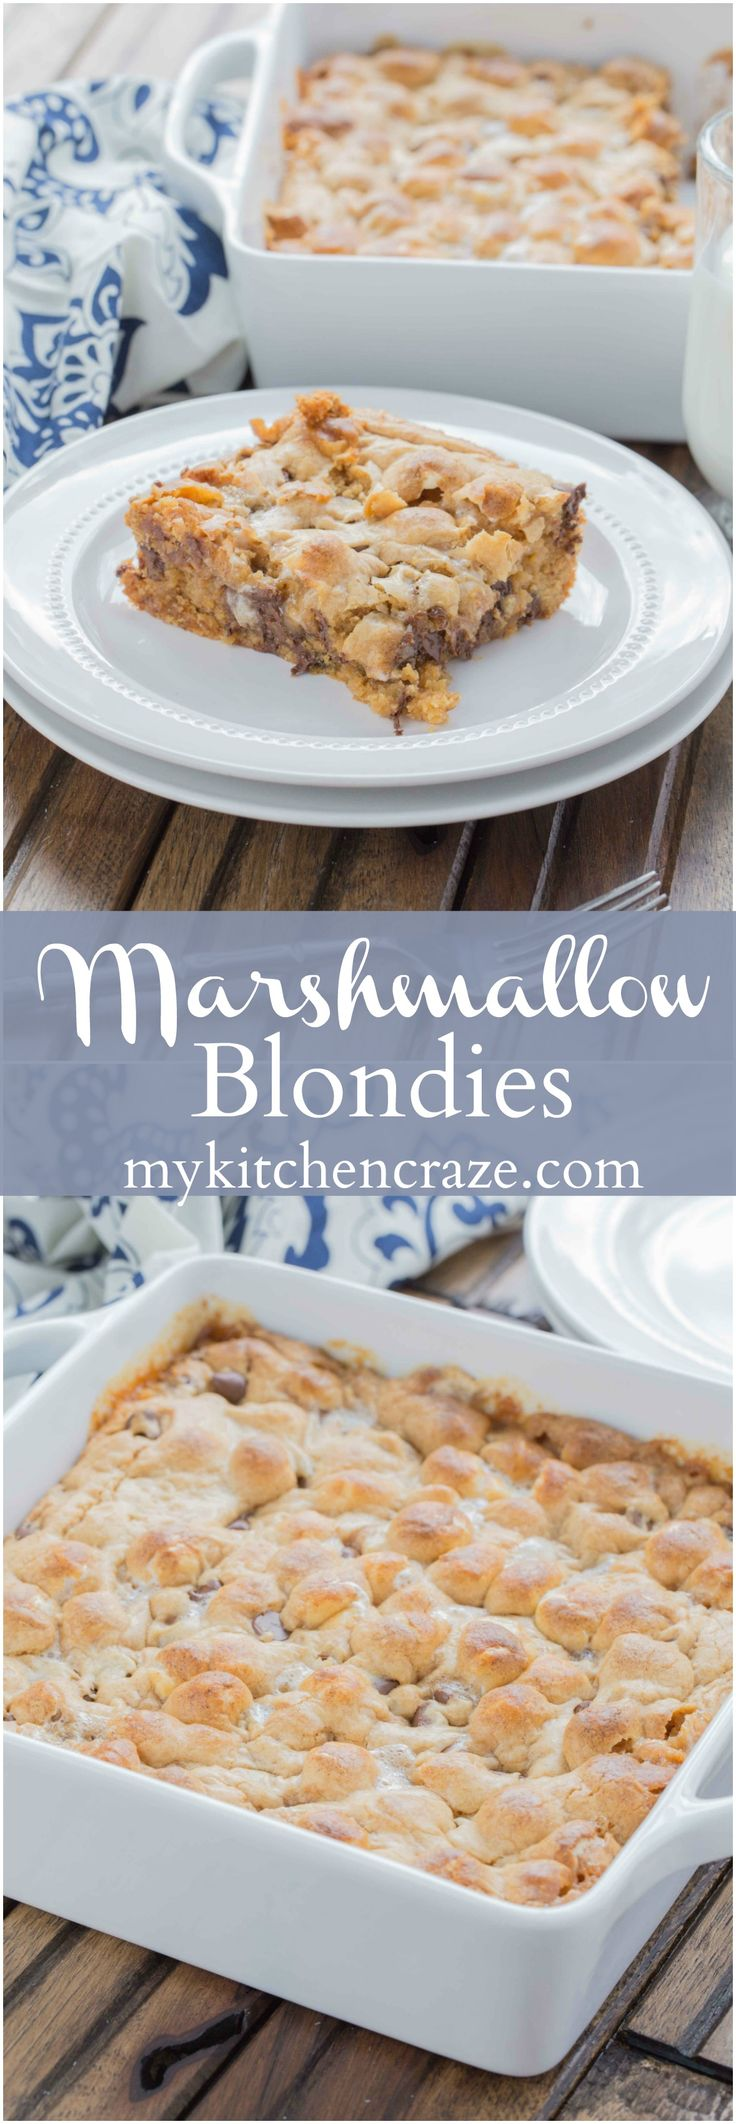 Marshmallow Blondies ~ mykitchencraze.com ~ Need a tasty and quick dessert?…